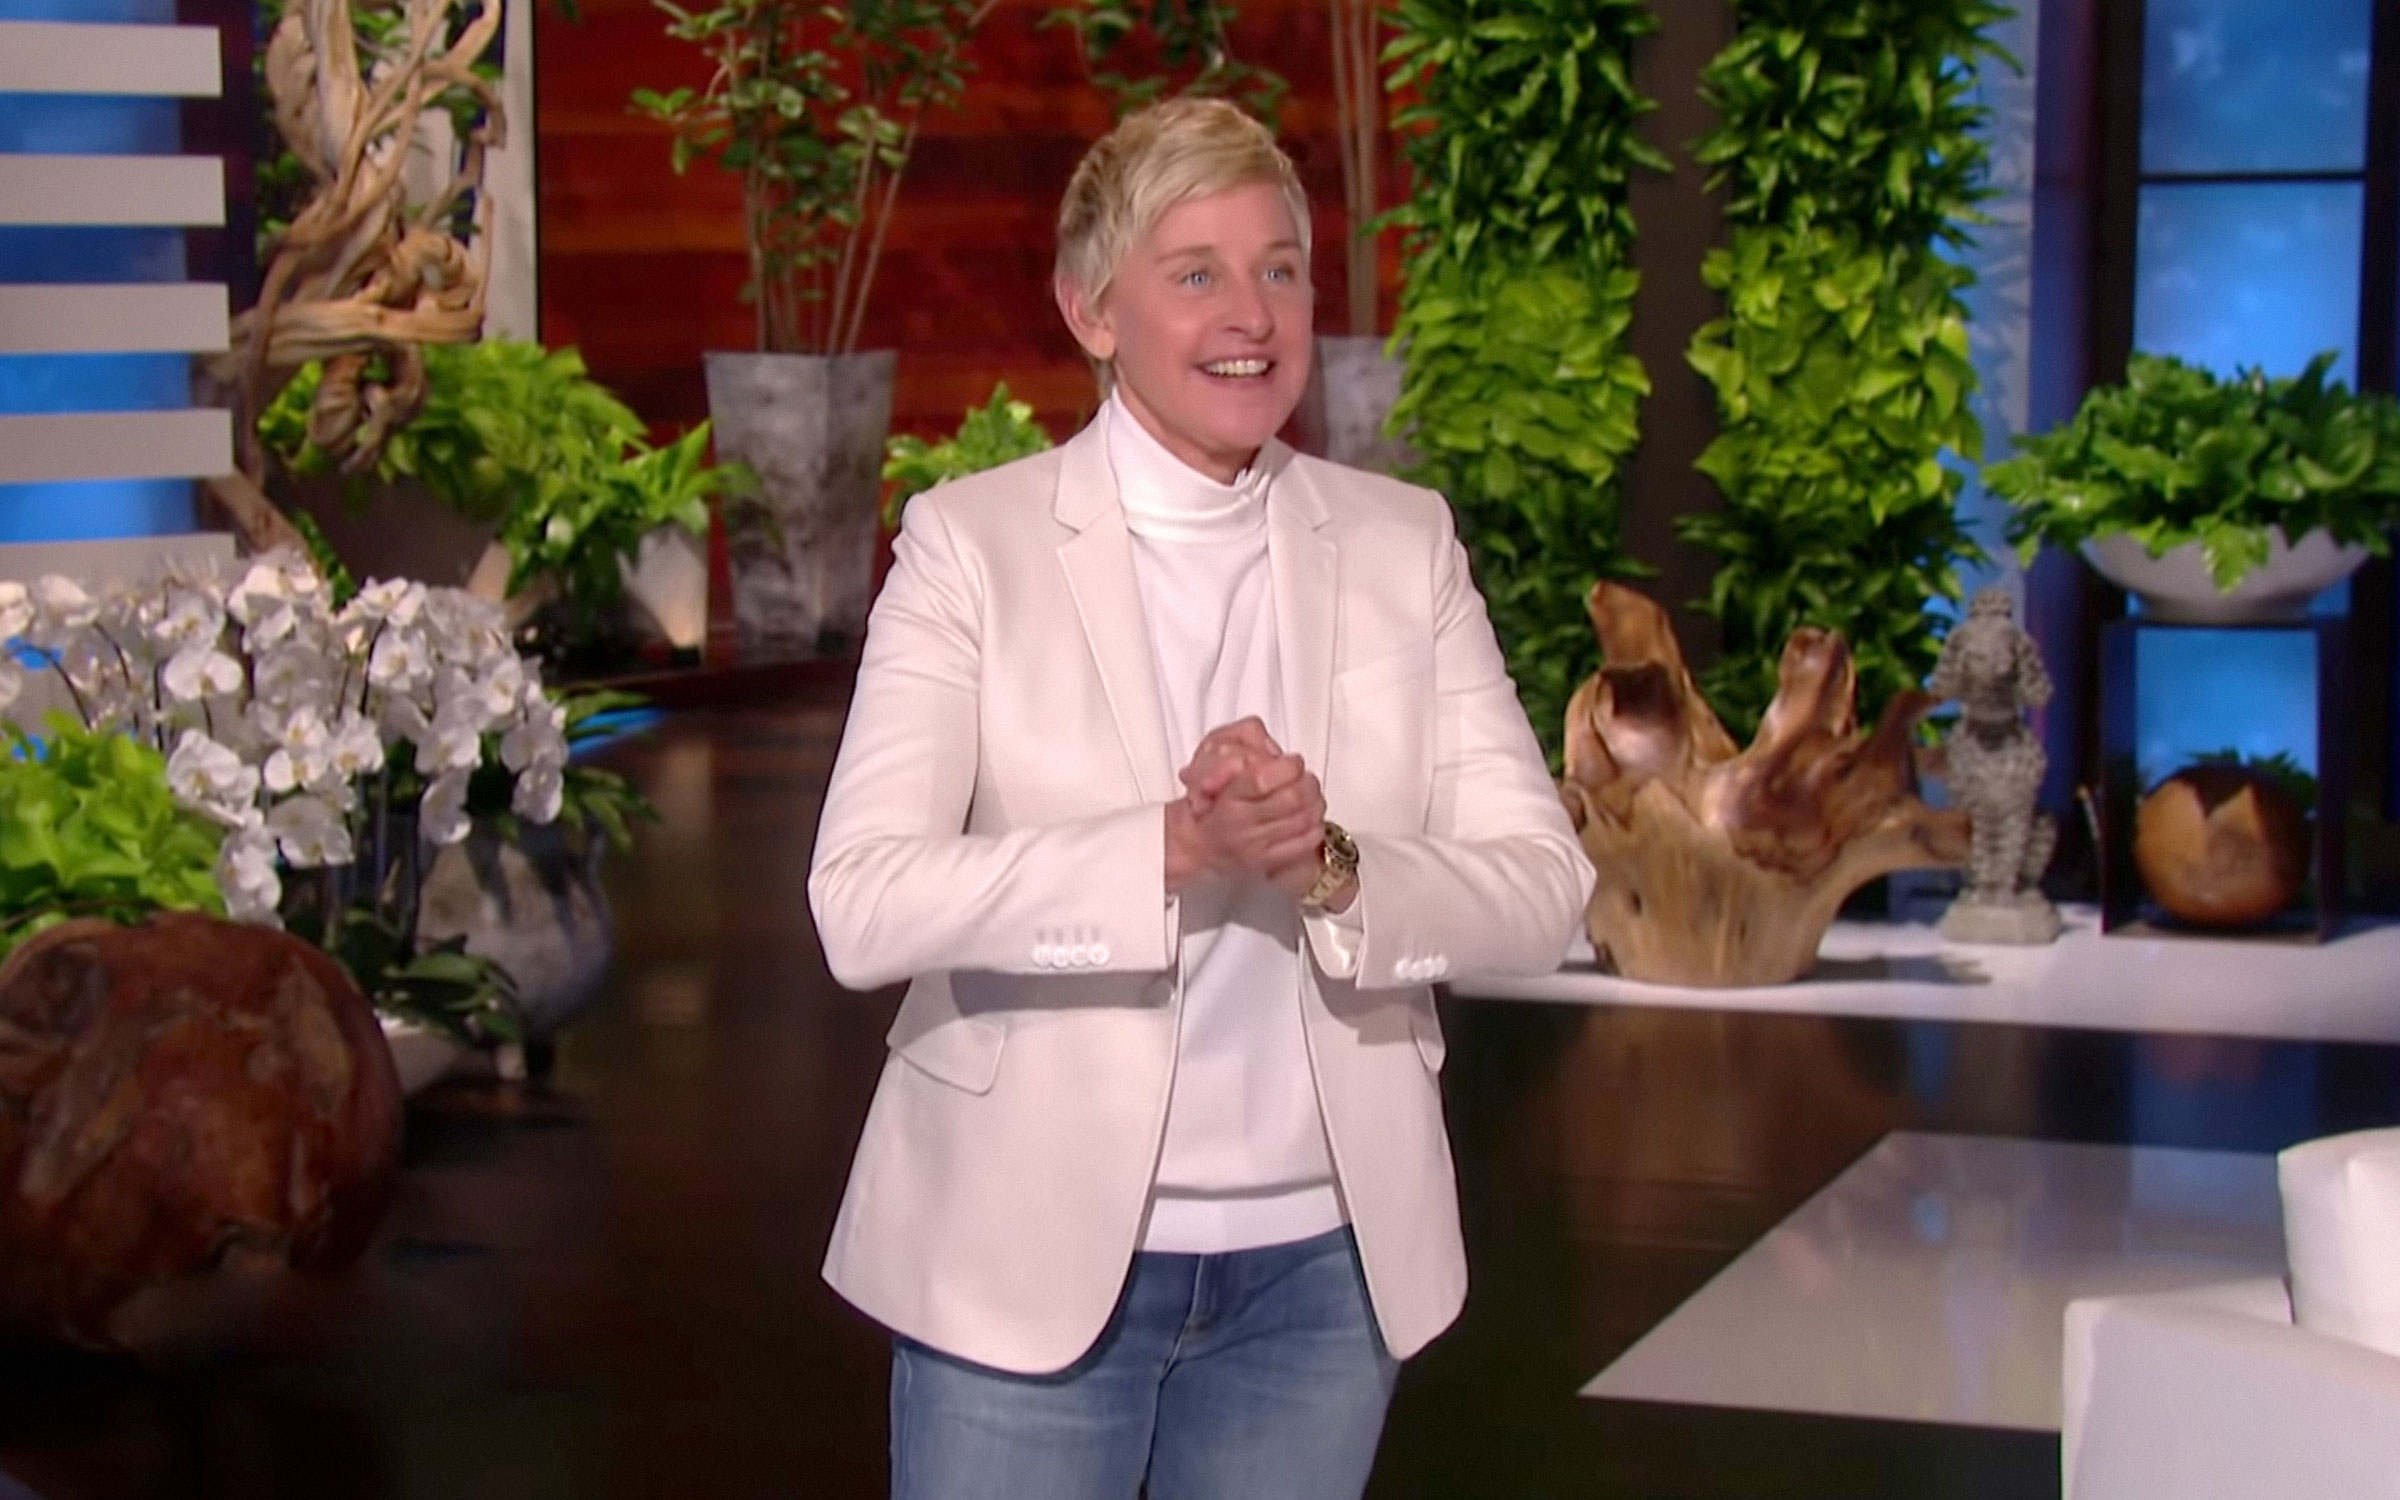 Ellen DeGeneres, a white woman with short blond hair, walks on stage.